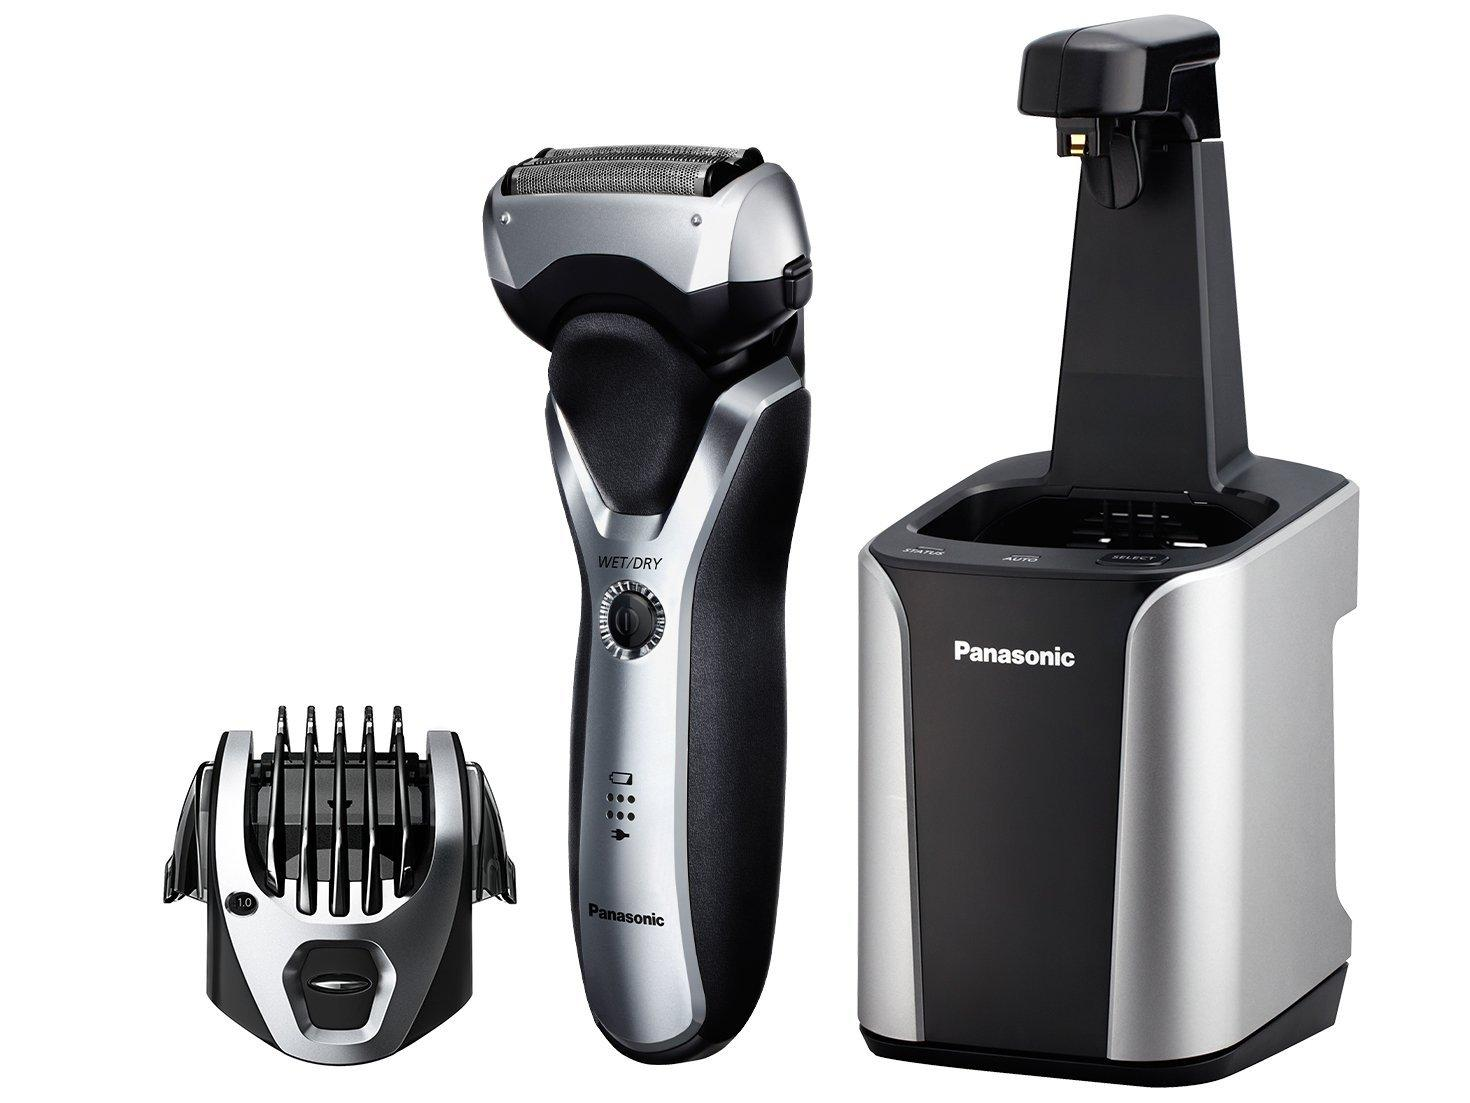 Panasonic ES-RT97-S Men's Electric Shaver and Trimmer with Cleaning System